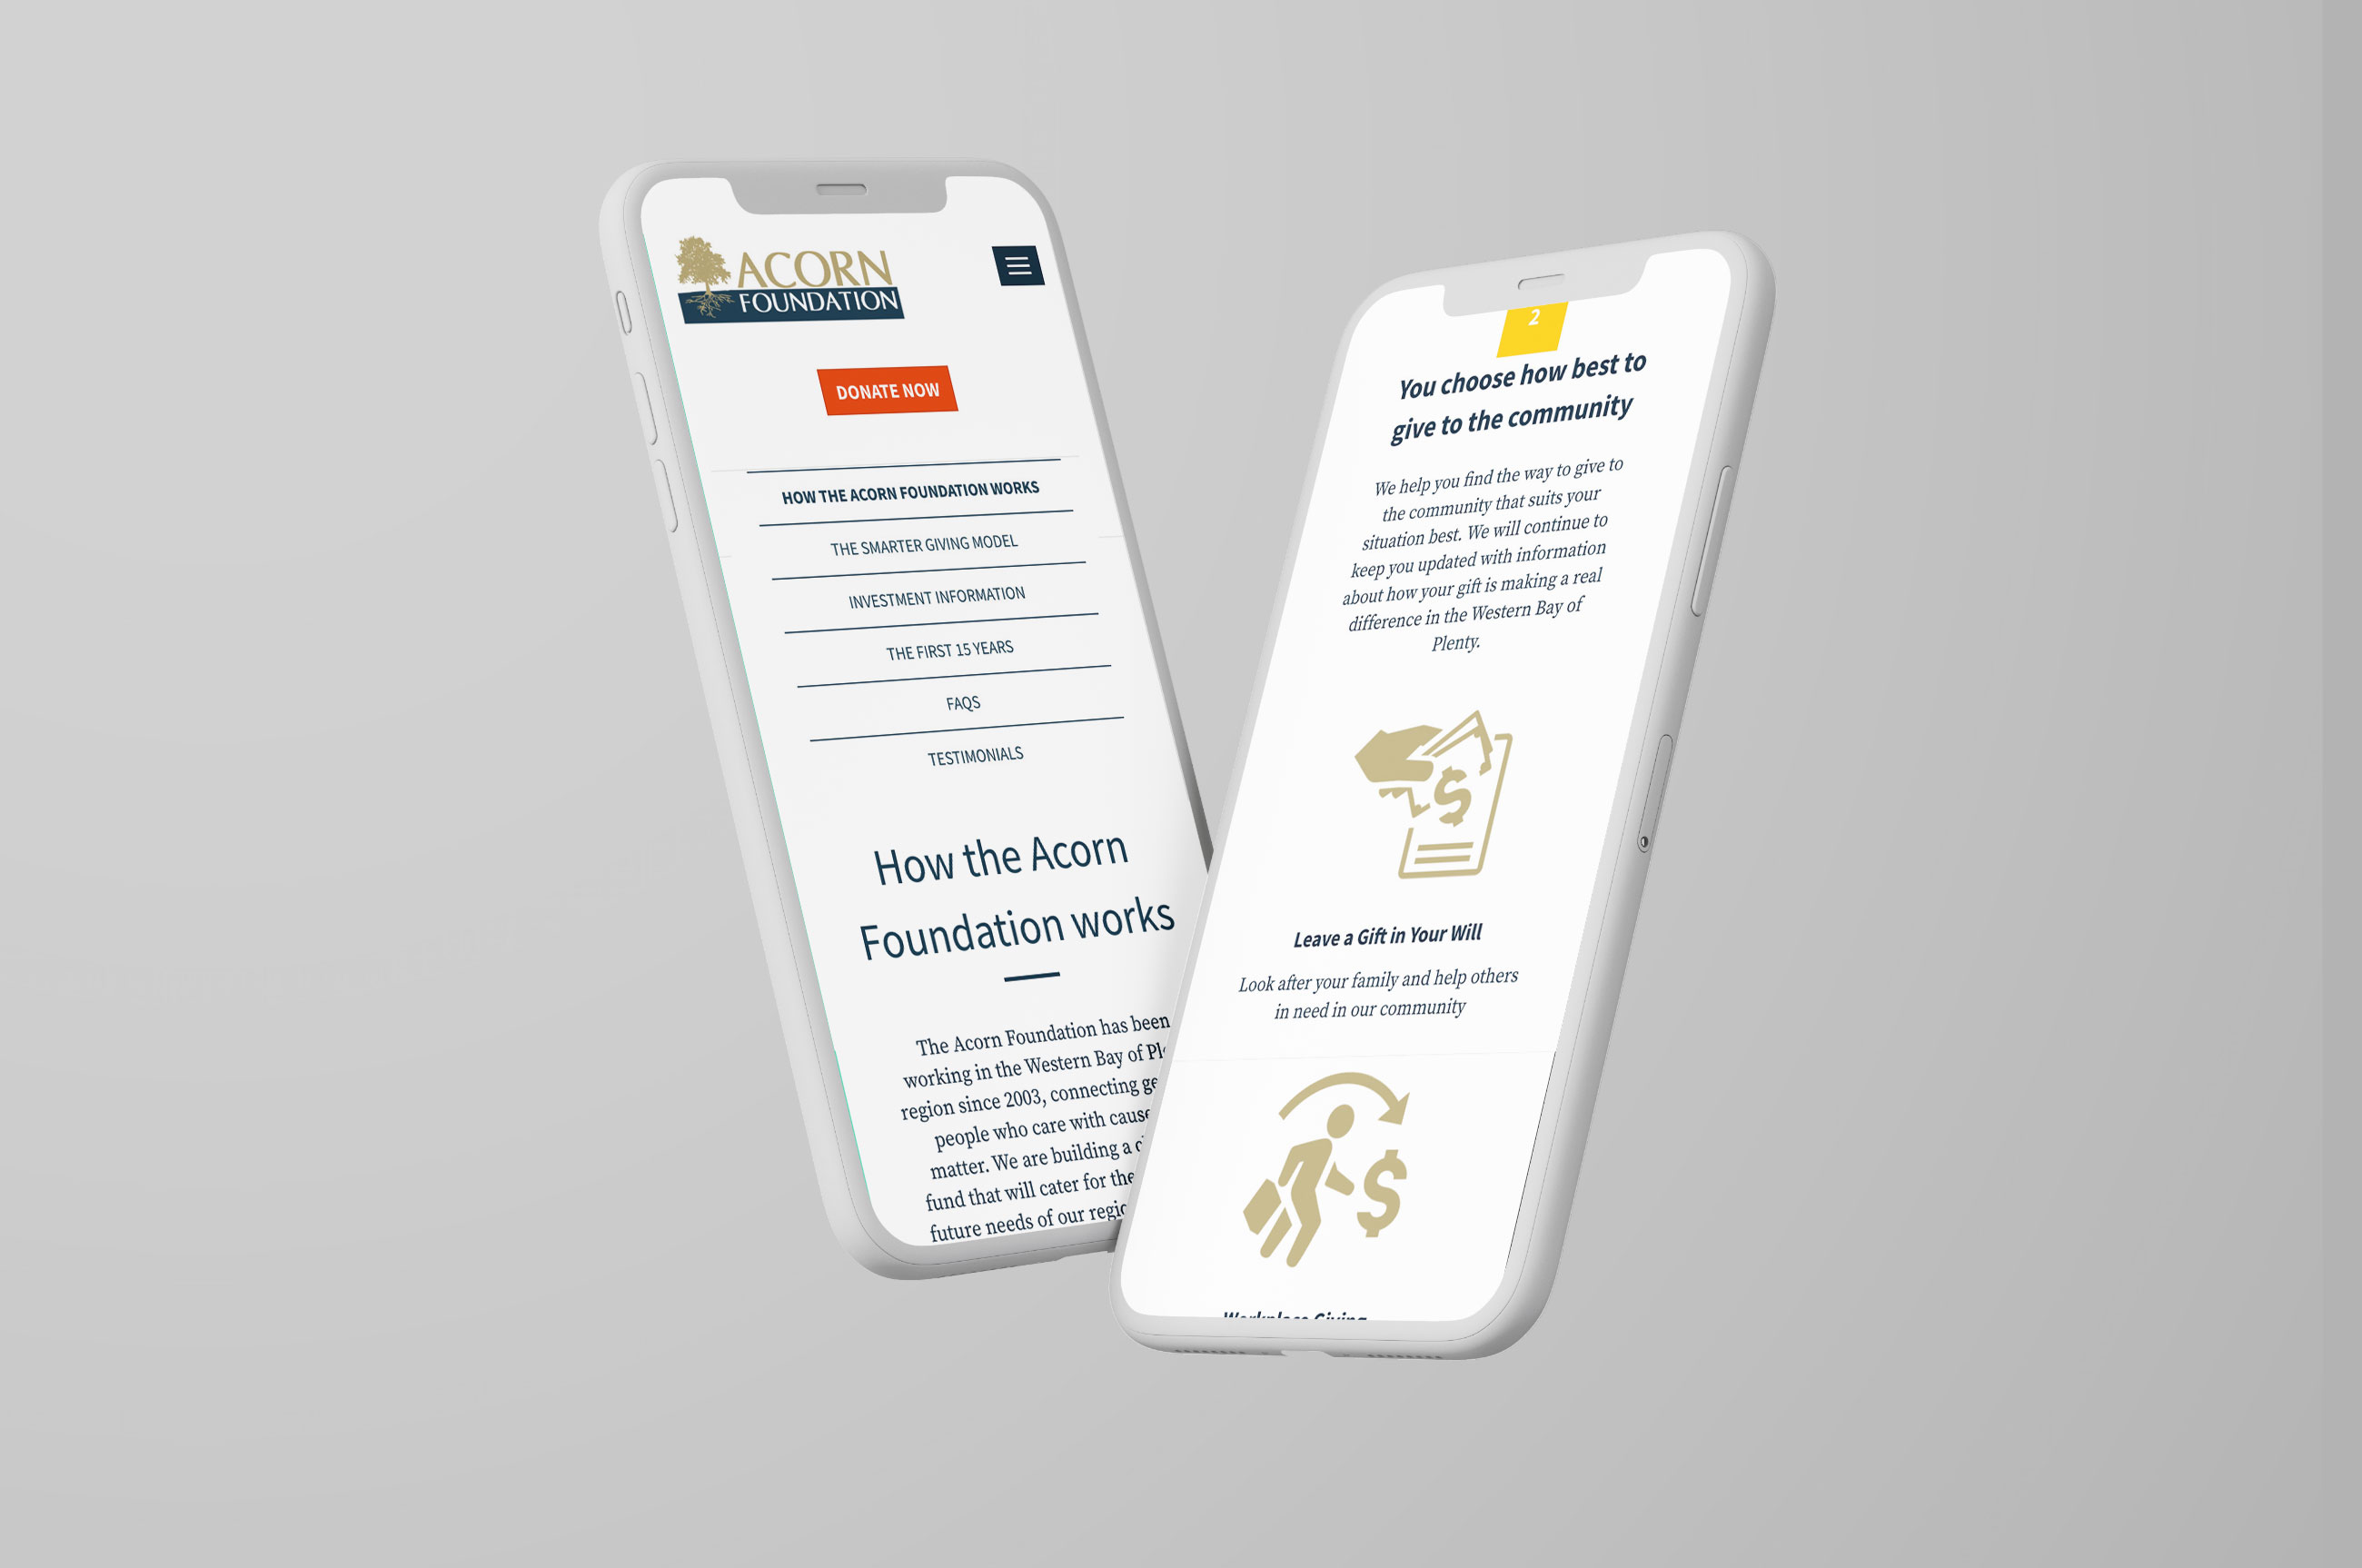 A view of the mobile website we created for Acorn Foundation